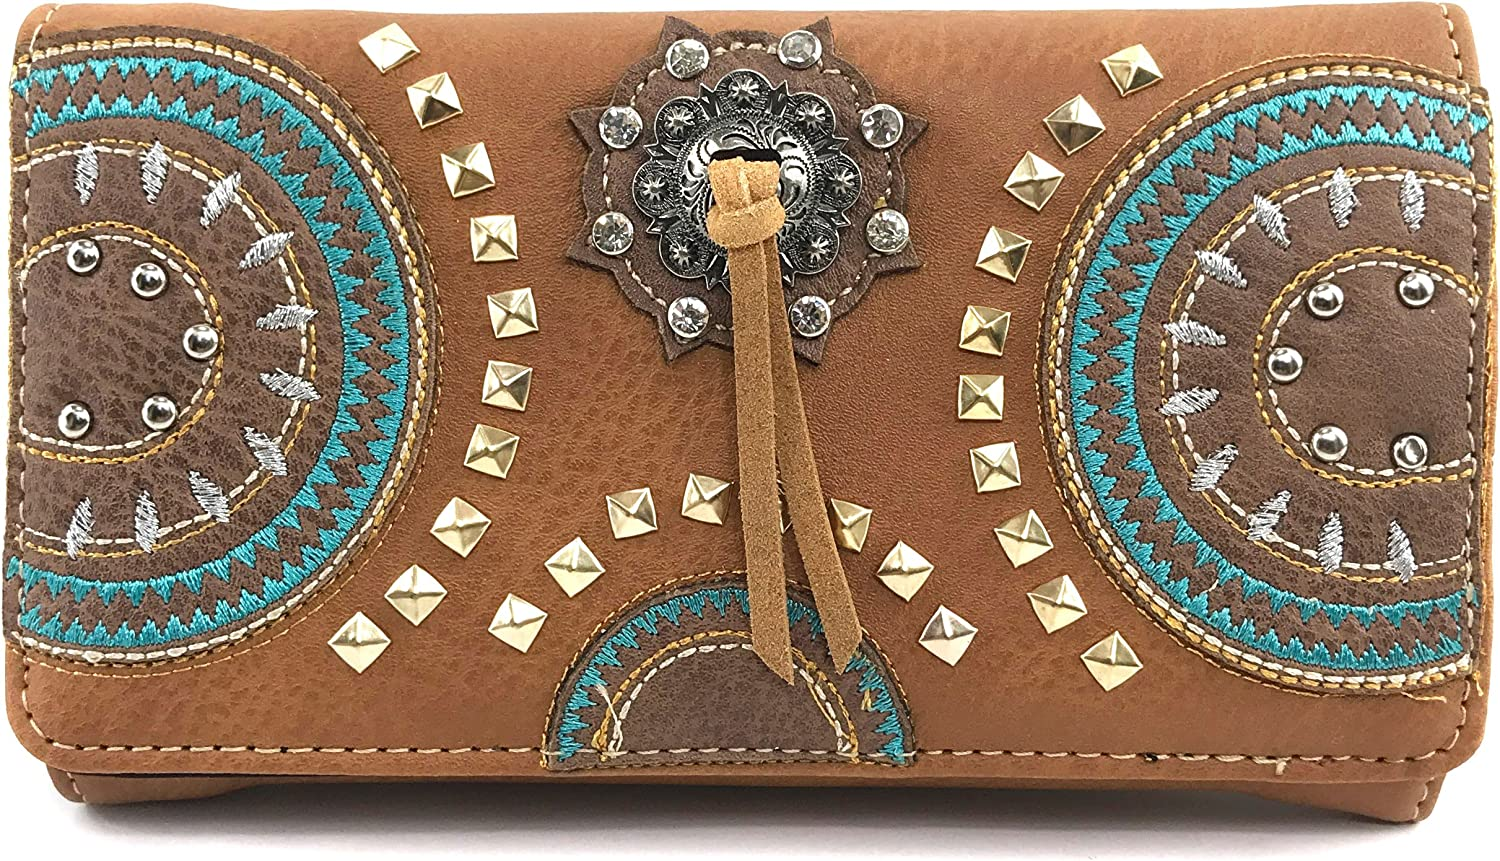 Super sale Justin West Native Max 54% OFF American Circle Embroider Gold Mountain Studs